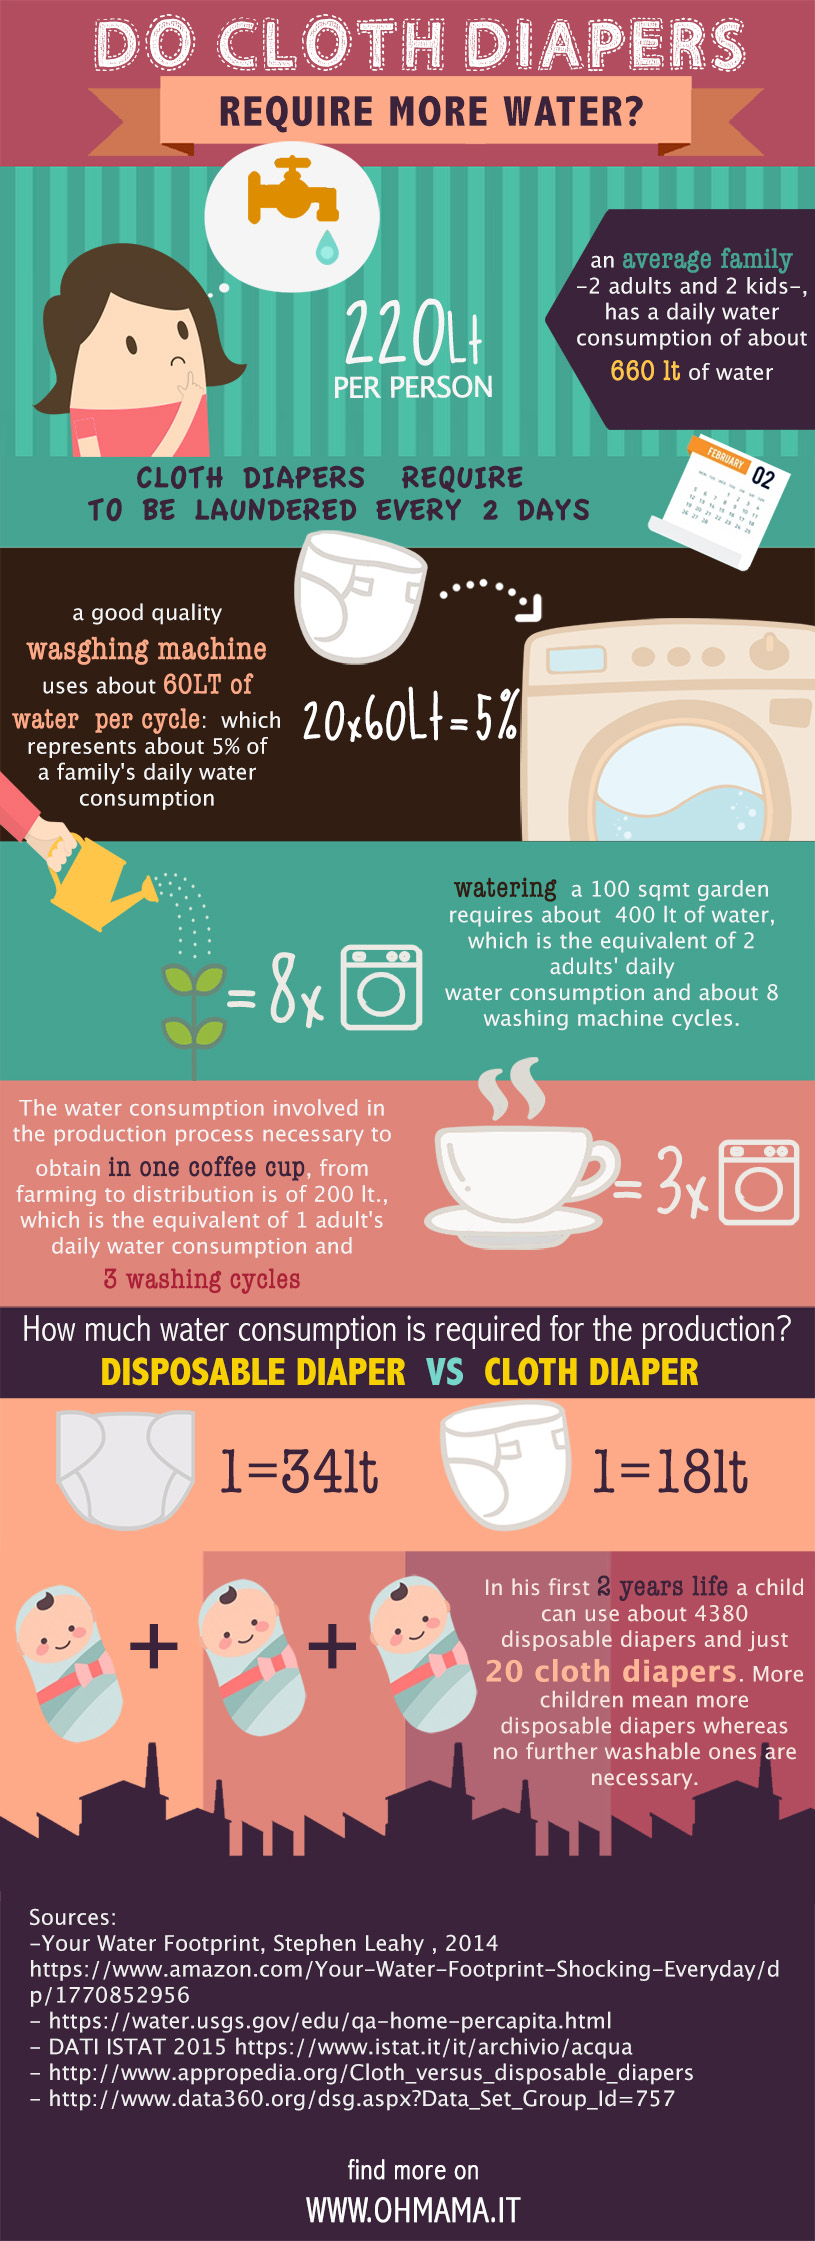 washable diapers and water consumption